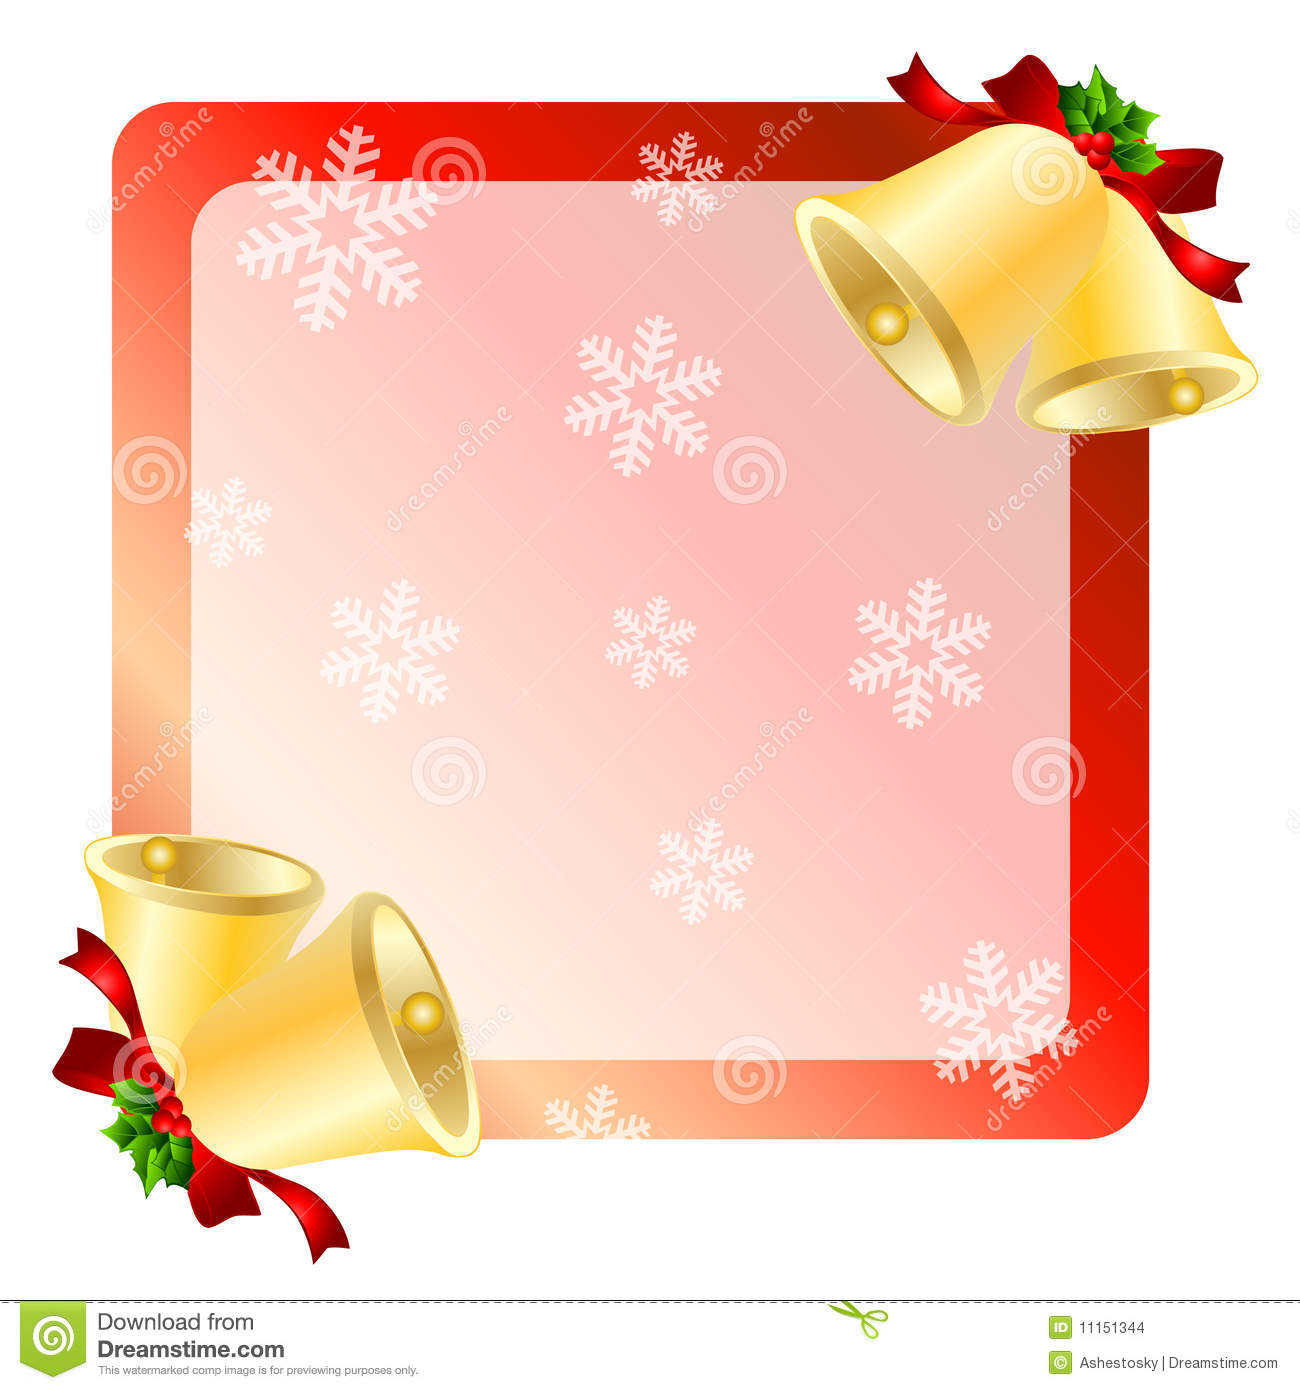 christmas bells greetings card stock vector image 11151344. Black Bedroom Furniture Sets. Home Design Ideas